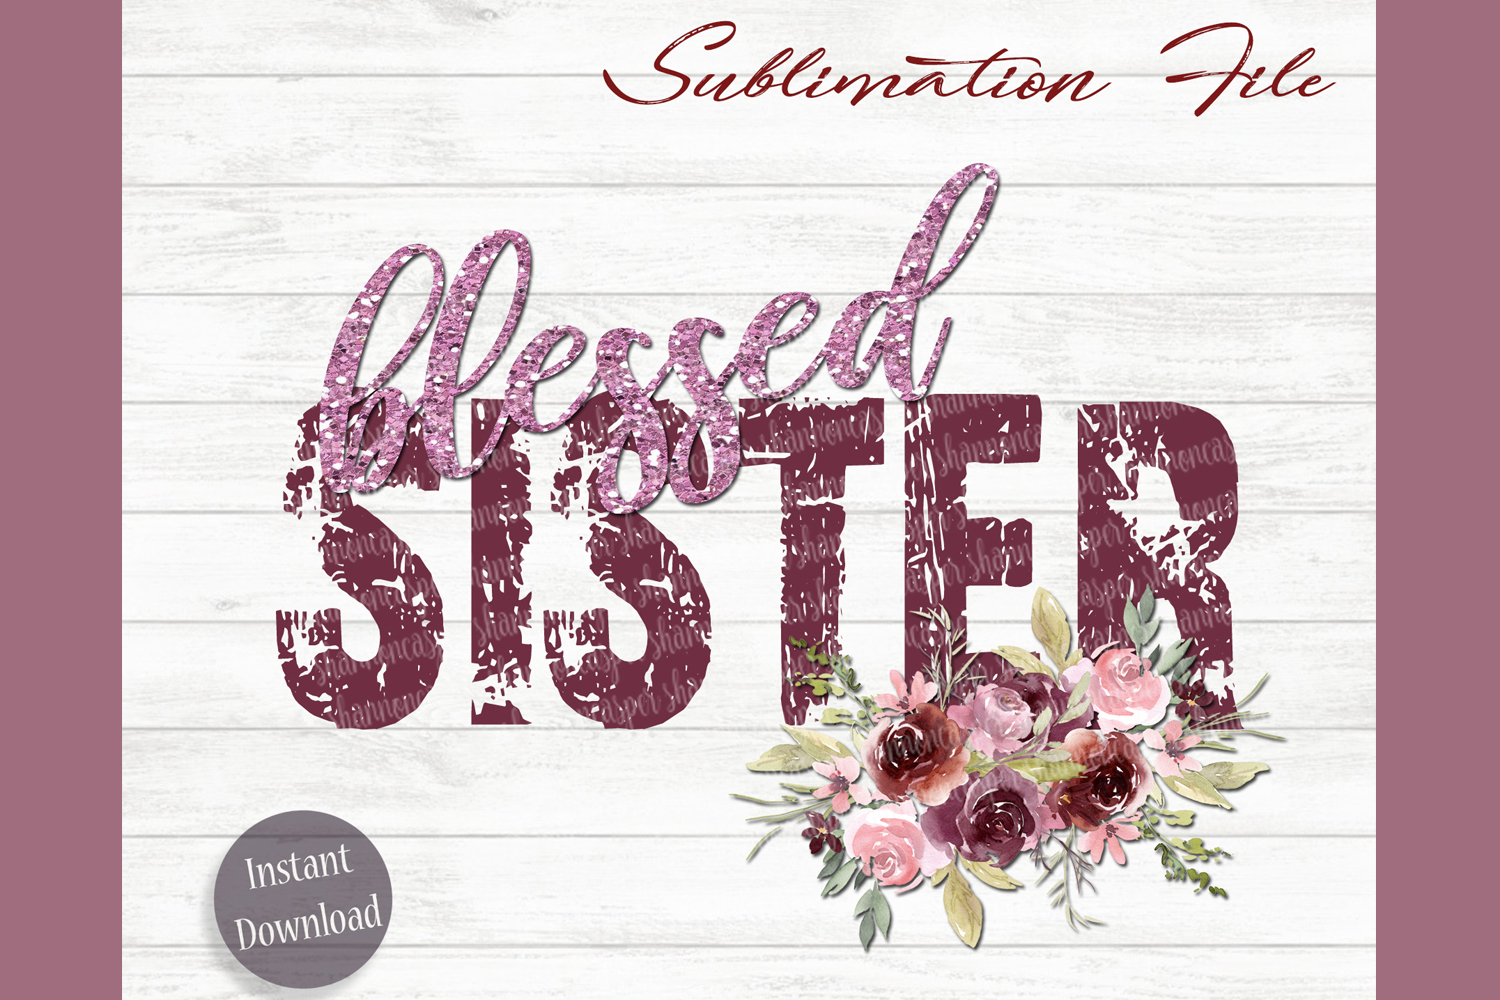 Blessed Sister Png File| Sublimation File example image 1